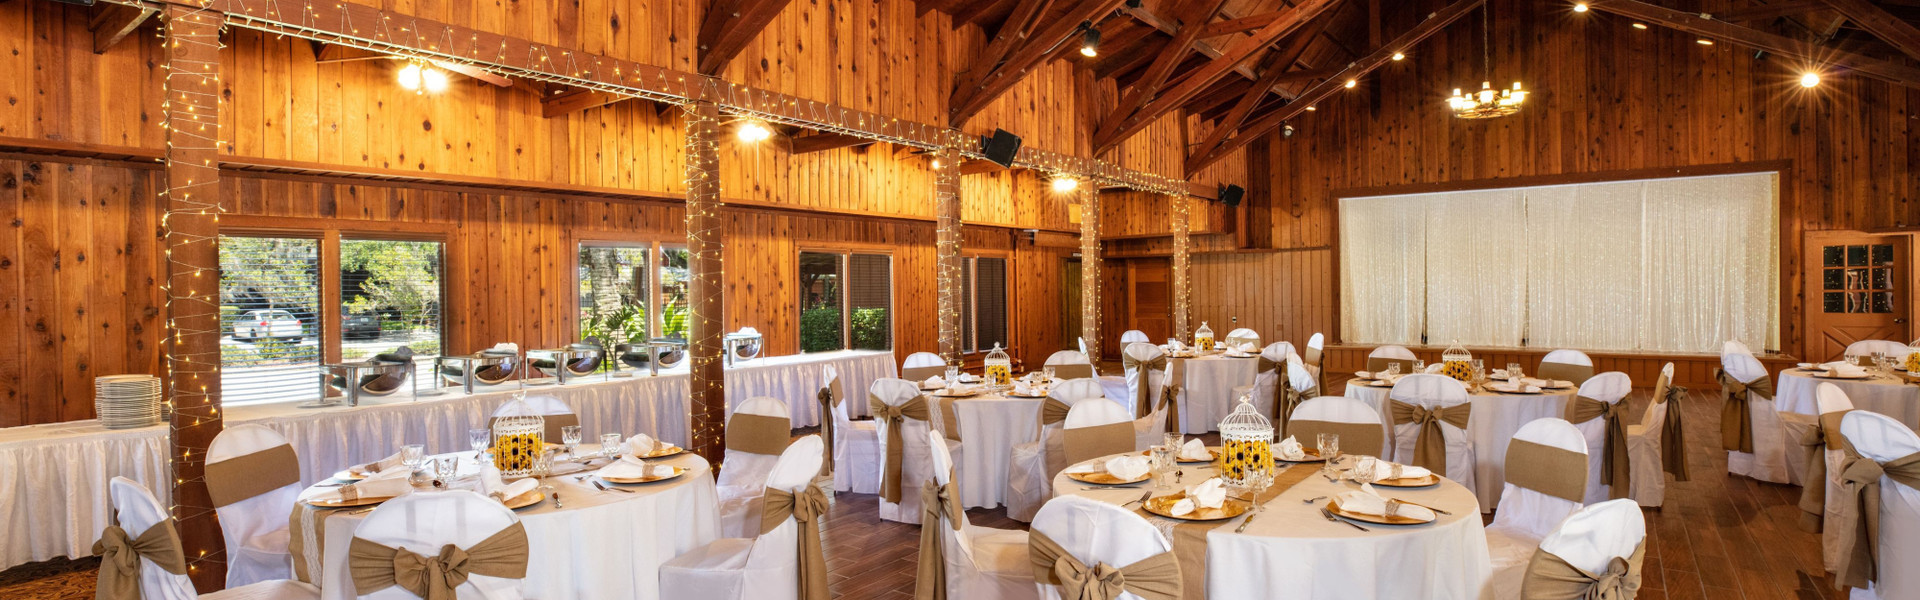 All Inclusive Wedding Packages In Florida At Our Dude Ranch | River Ranch Hall